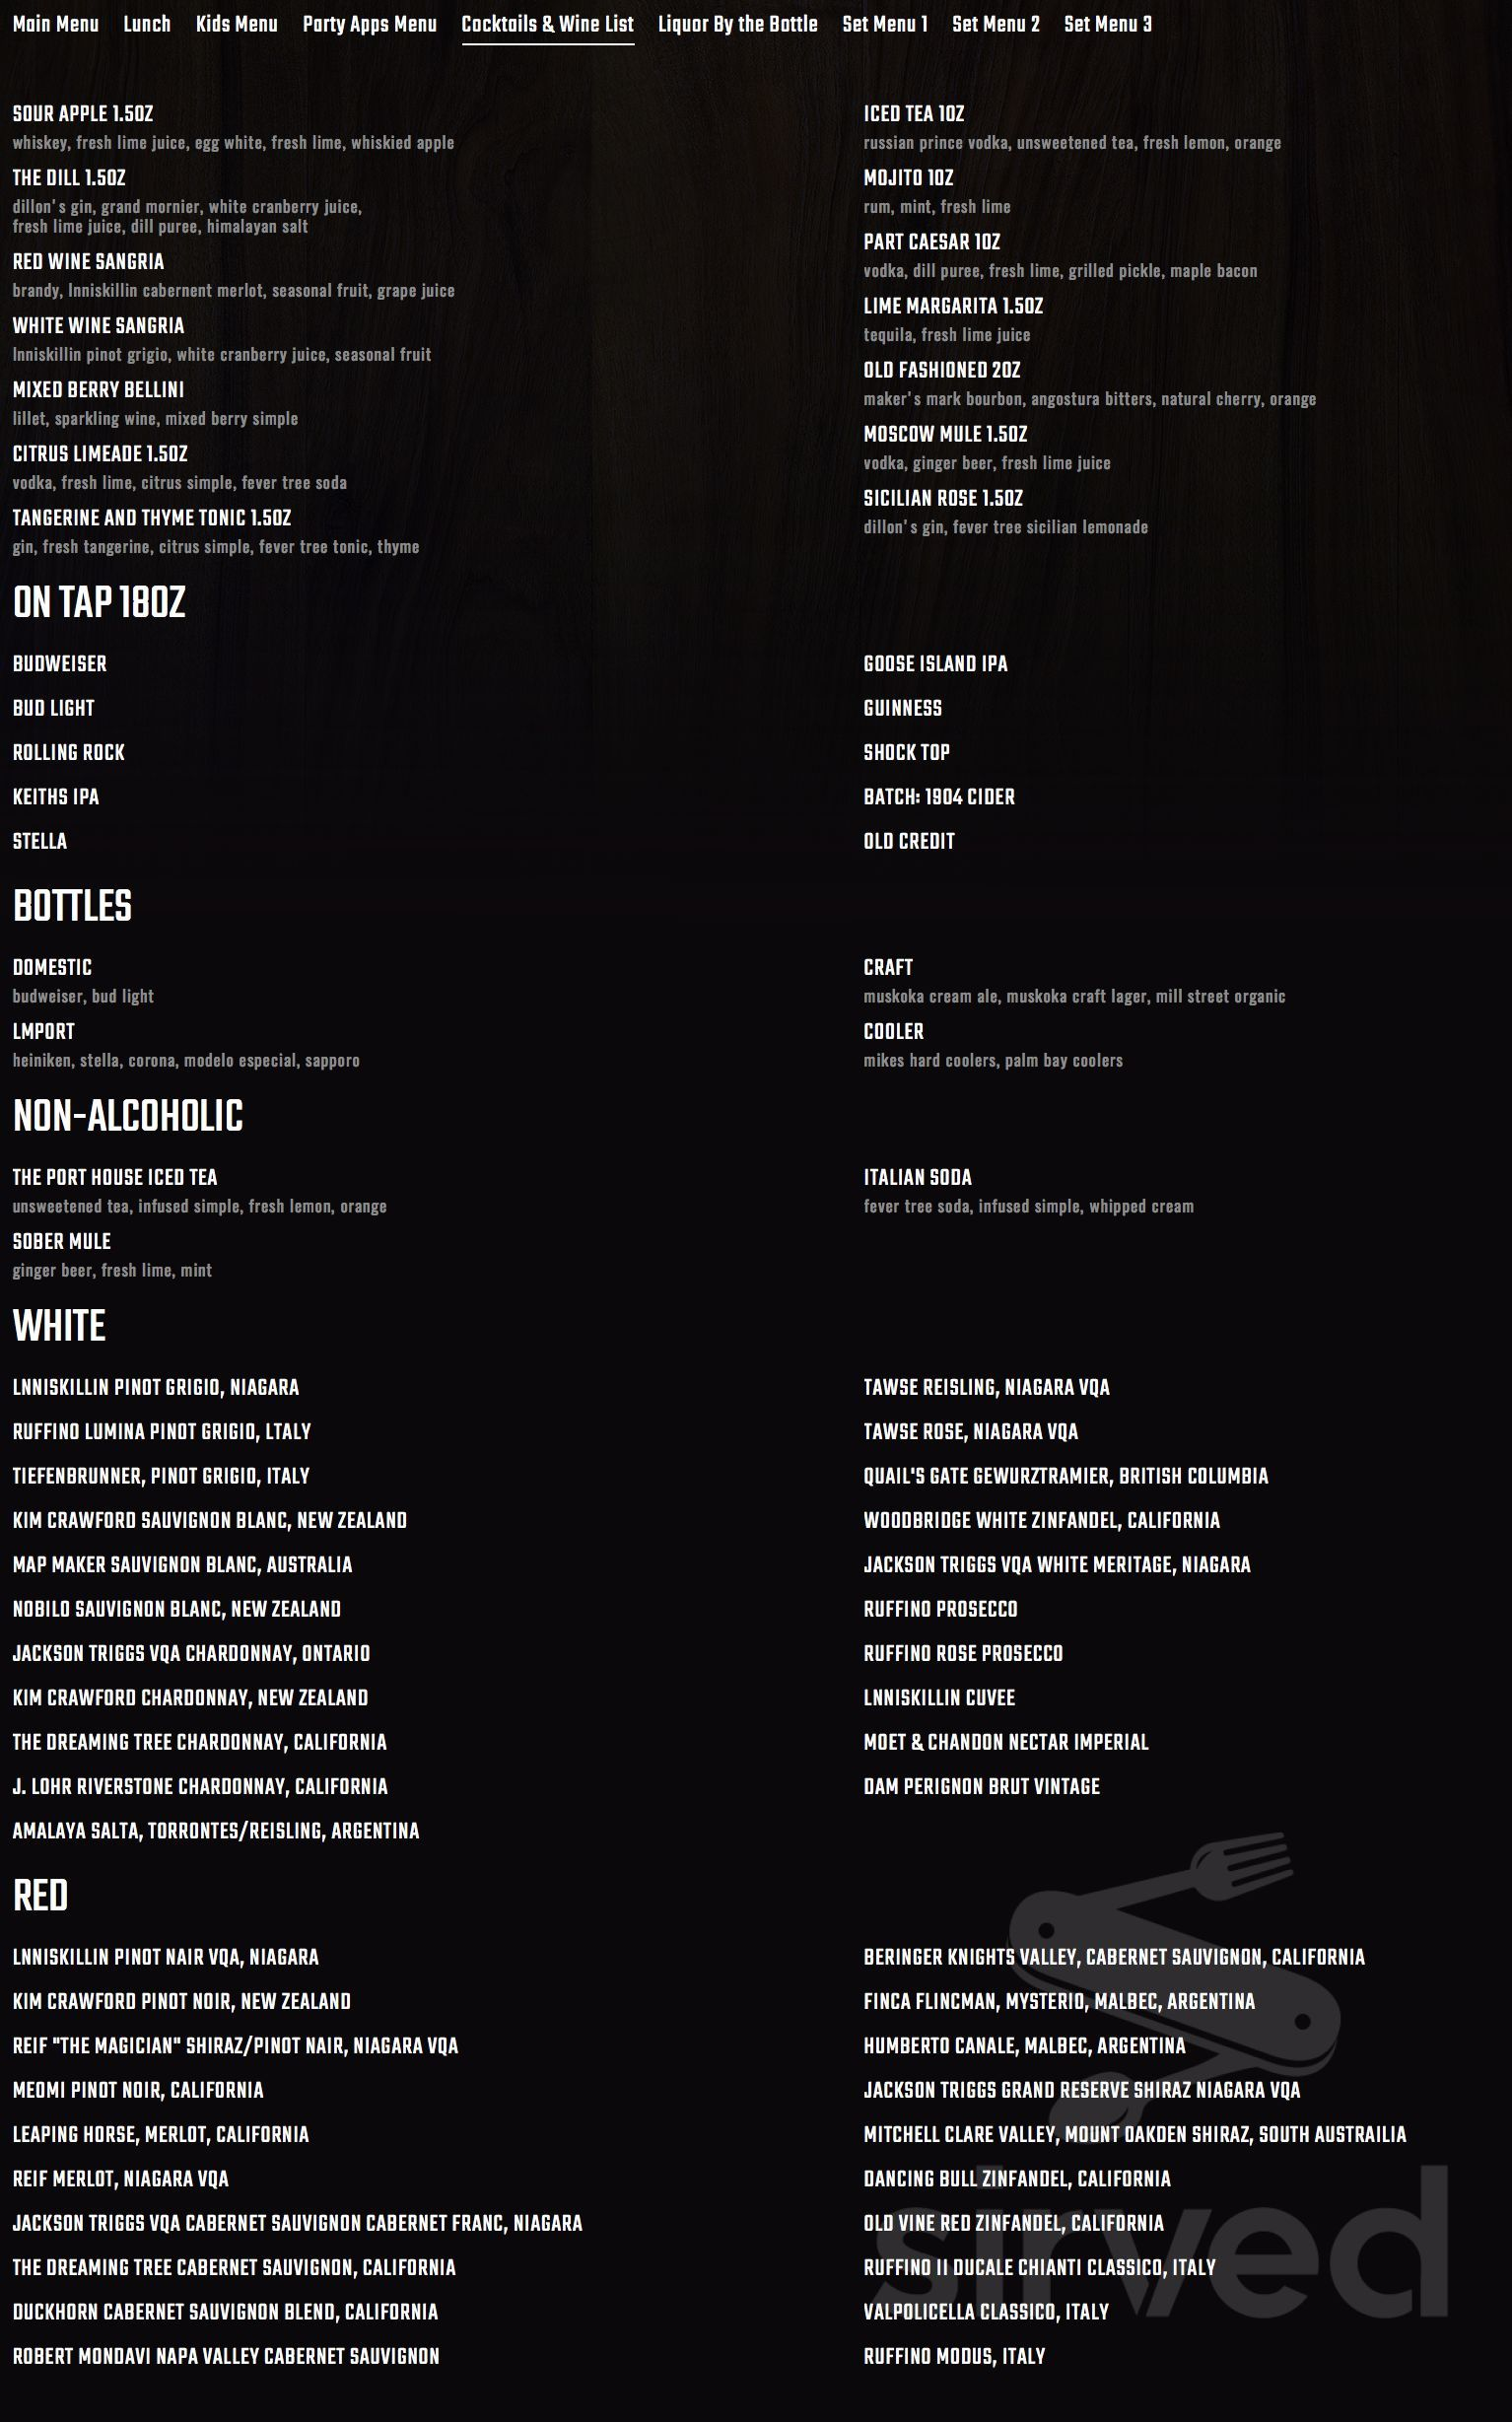 Menu for The Port House Social Bar & Kitchen in Mississauga